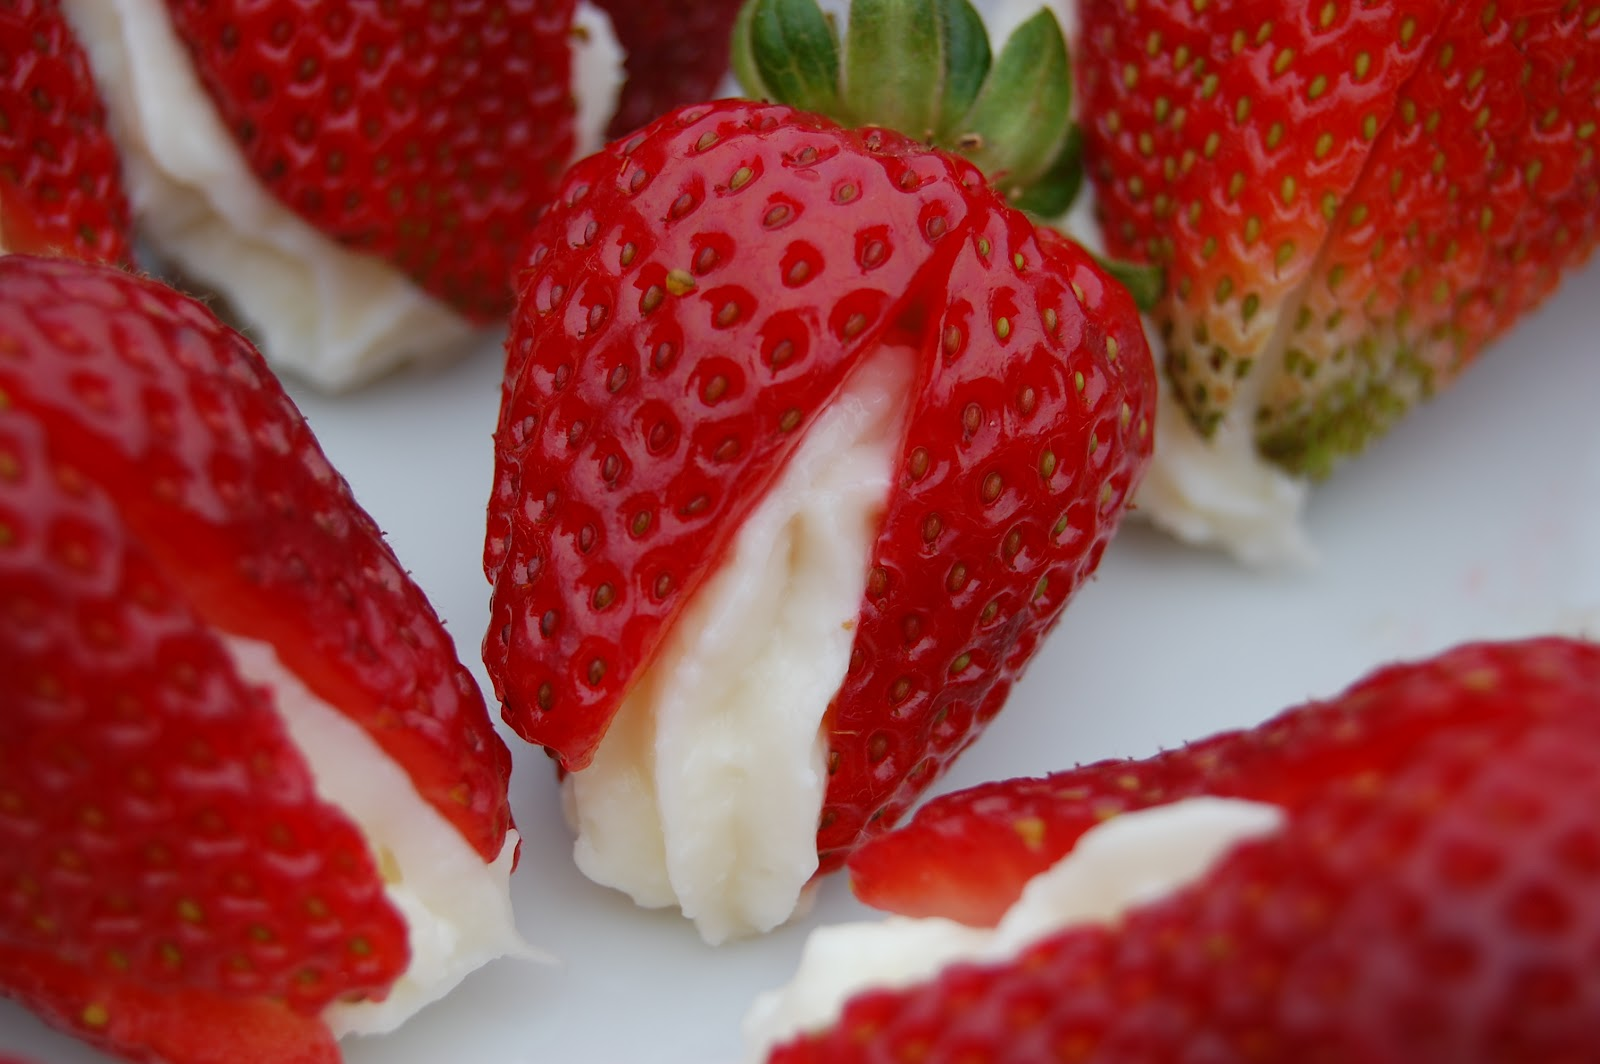 how to keep cut up strawberries fresh